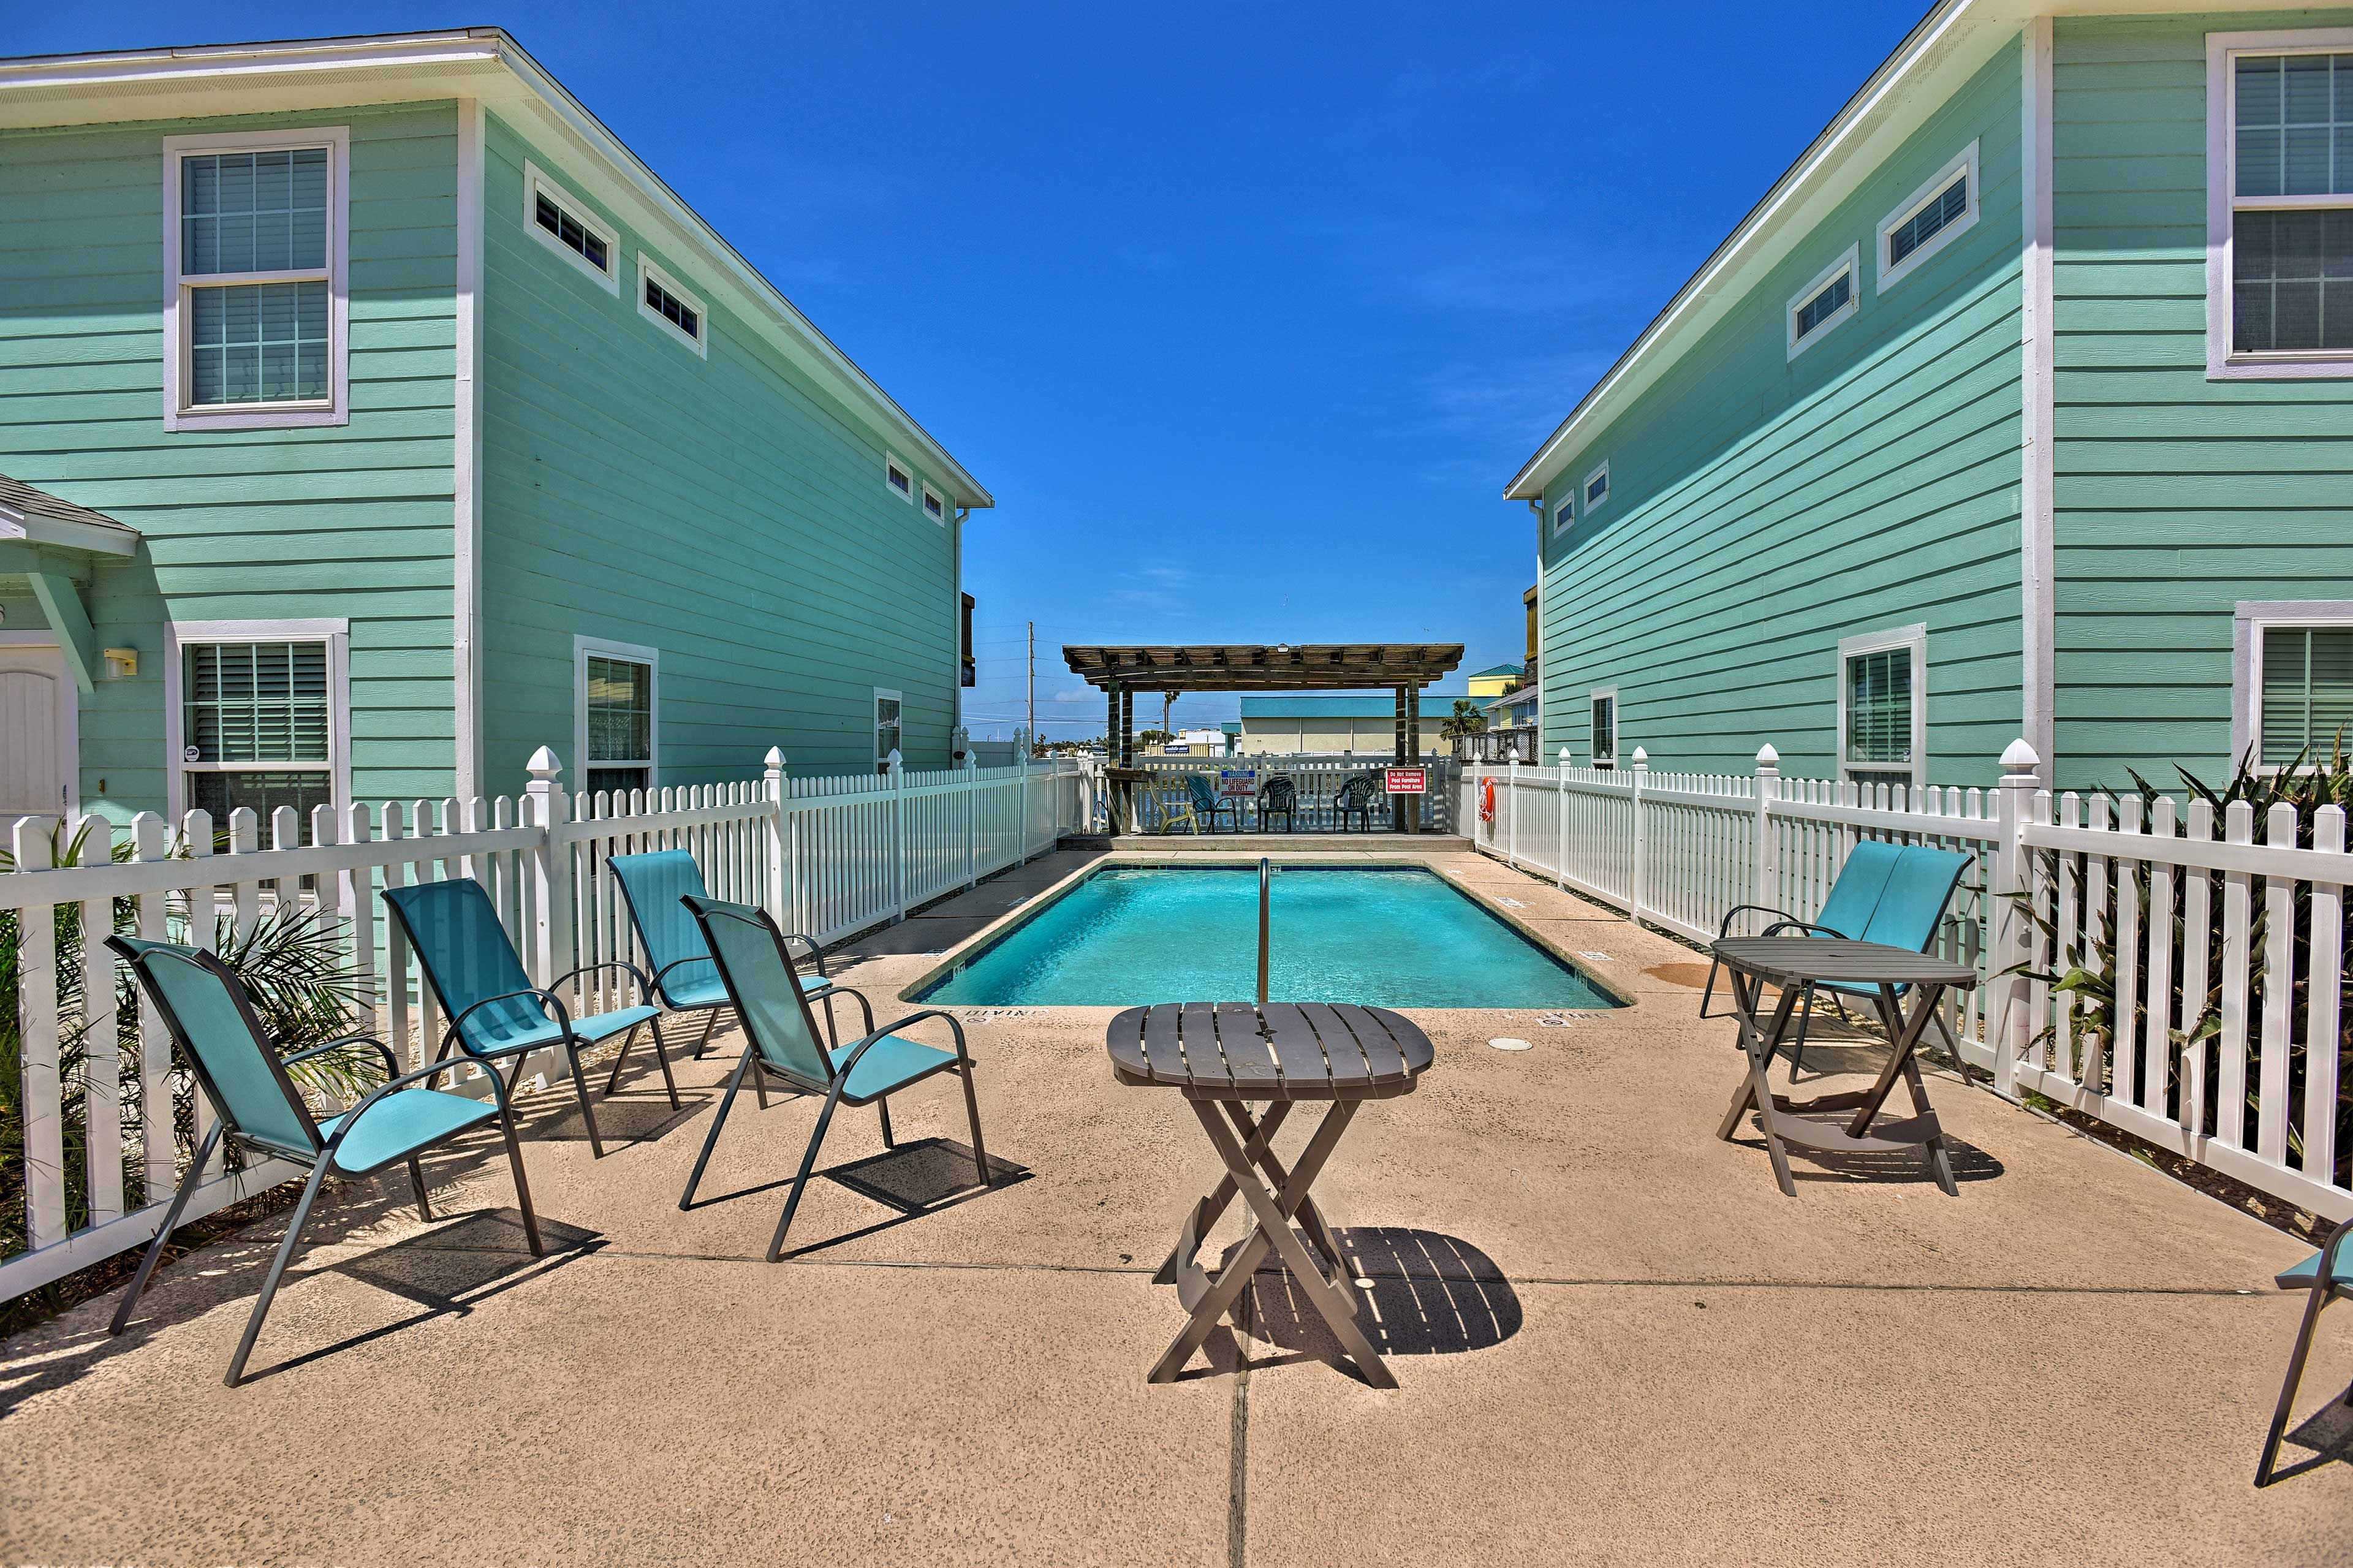 Soak up the sun and splash in the pool while in Port Aransas on Mustang Island!